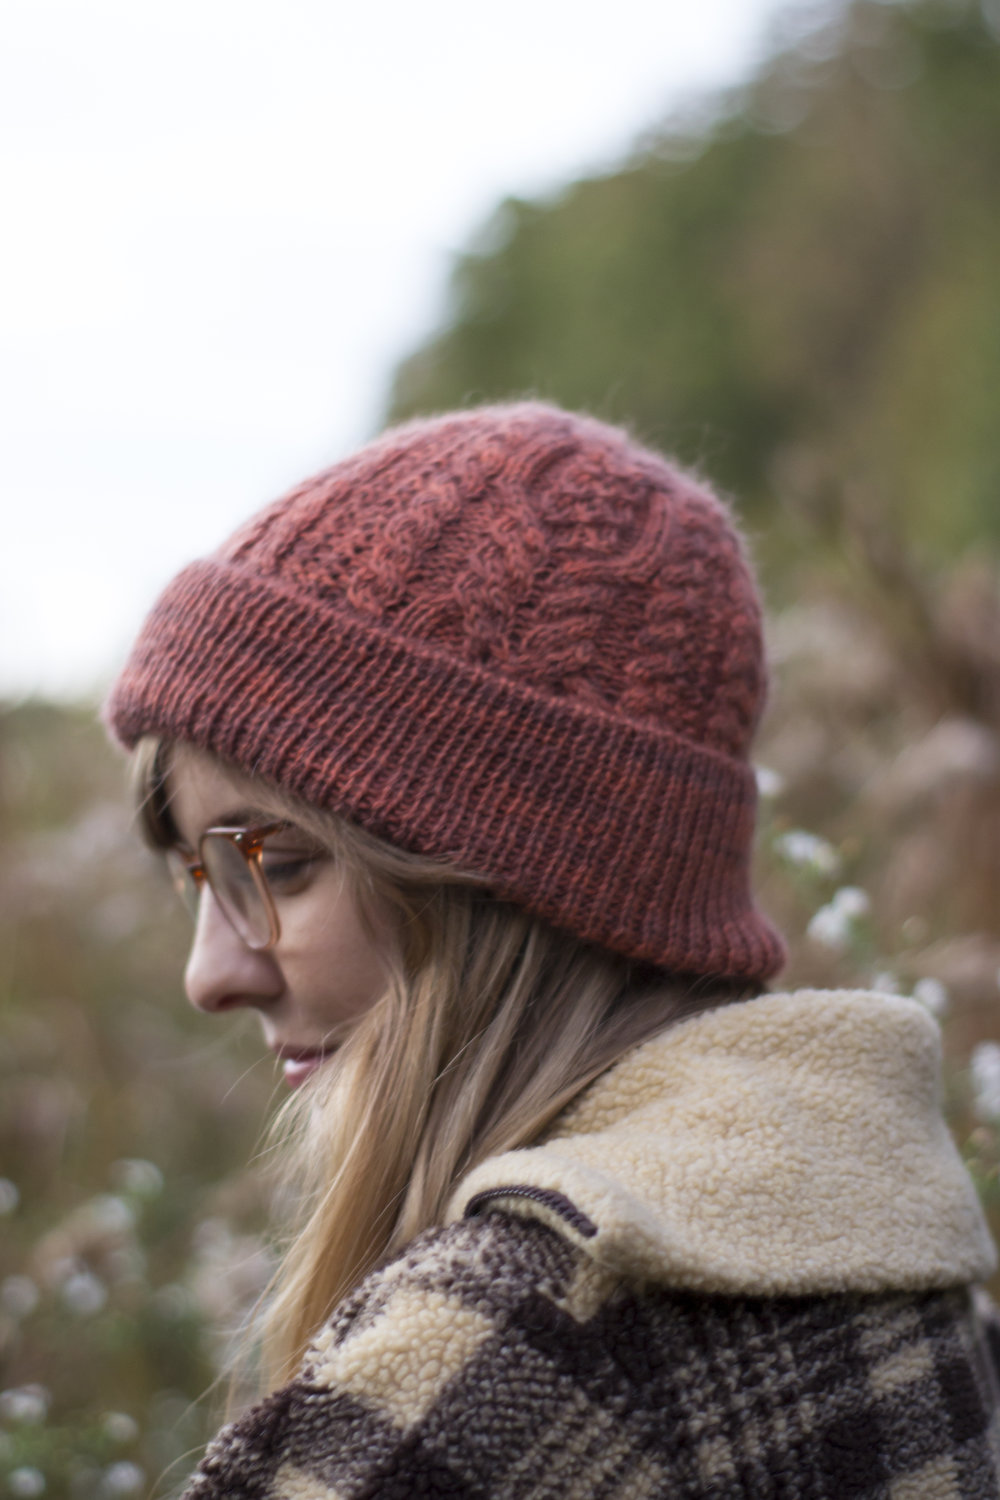 February 16, 2019 - Gretna Hat Class at Charlotte Yarn1235 East Blvd • Charlotte, NC • 28203 • 704.373.74422/16/19  - 2:00 pm to 5:00 pmLike its mother, the Gretna Jumper, the Gretna Hat is densely cabled with a touch of eyelets, texture, and soothing ribbed knitting. This is a project-based class that takes place in three parts: Part I: Beginning with the End in Mind, Part II: Cables, Charts, and Everything In-between, & Part III: The Final Touches. Please visit Charlotte Yarn or the Charlotte Yarn Website for more information.